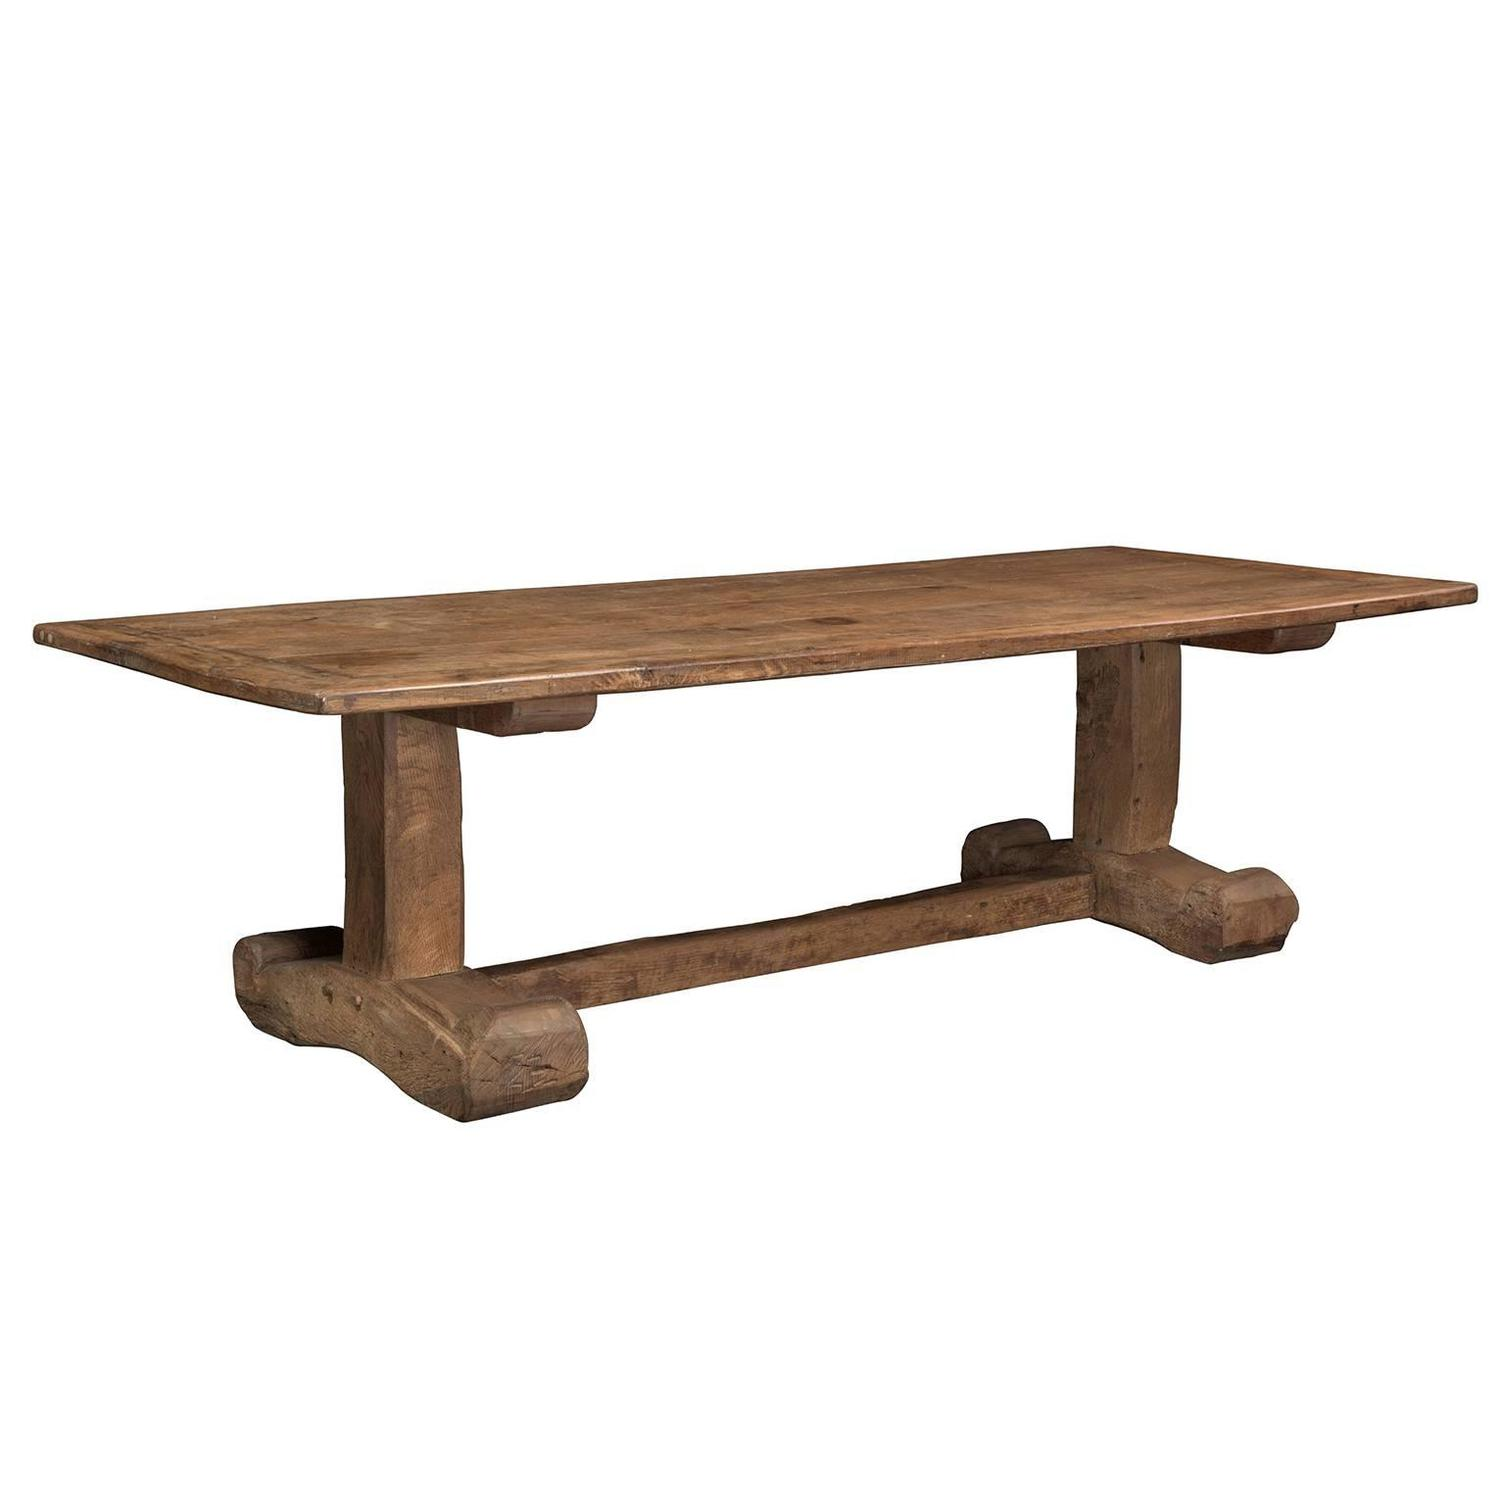 Rustic dining table at 1stdibs for Asciidoctor org table